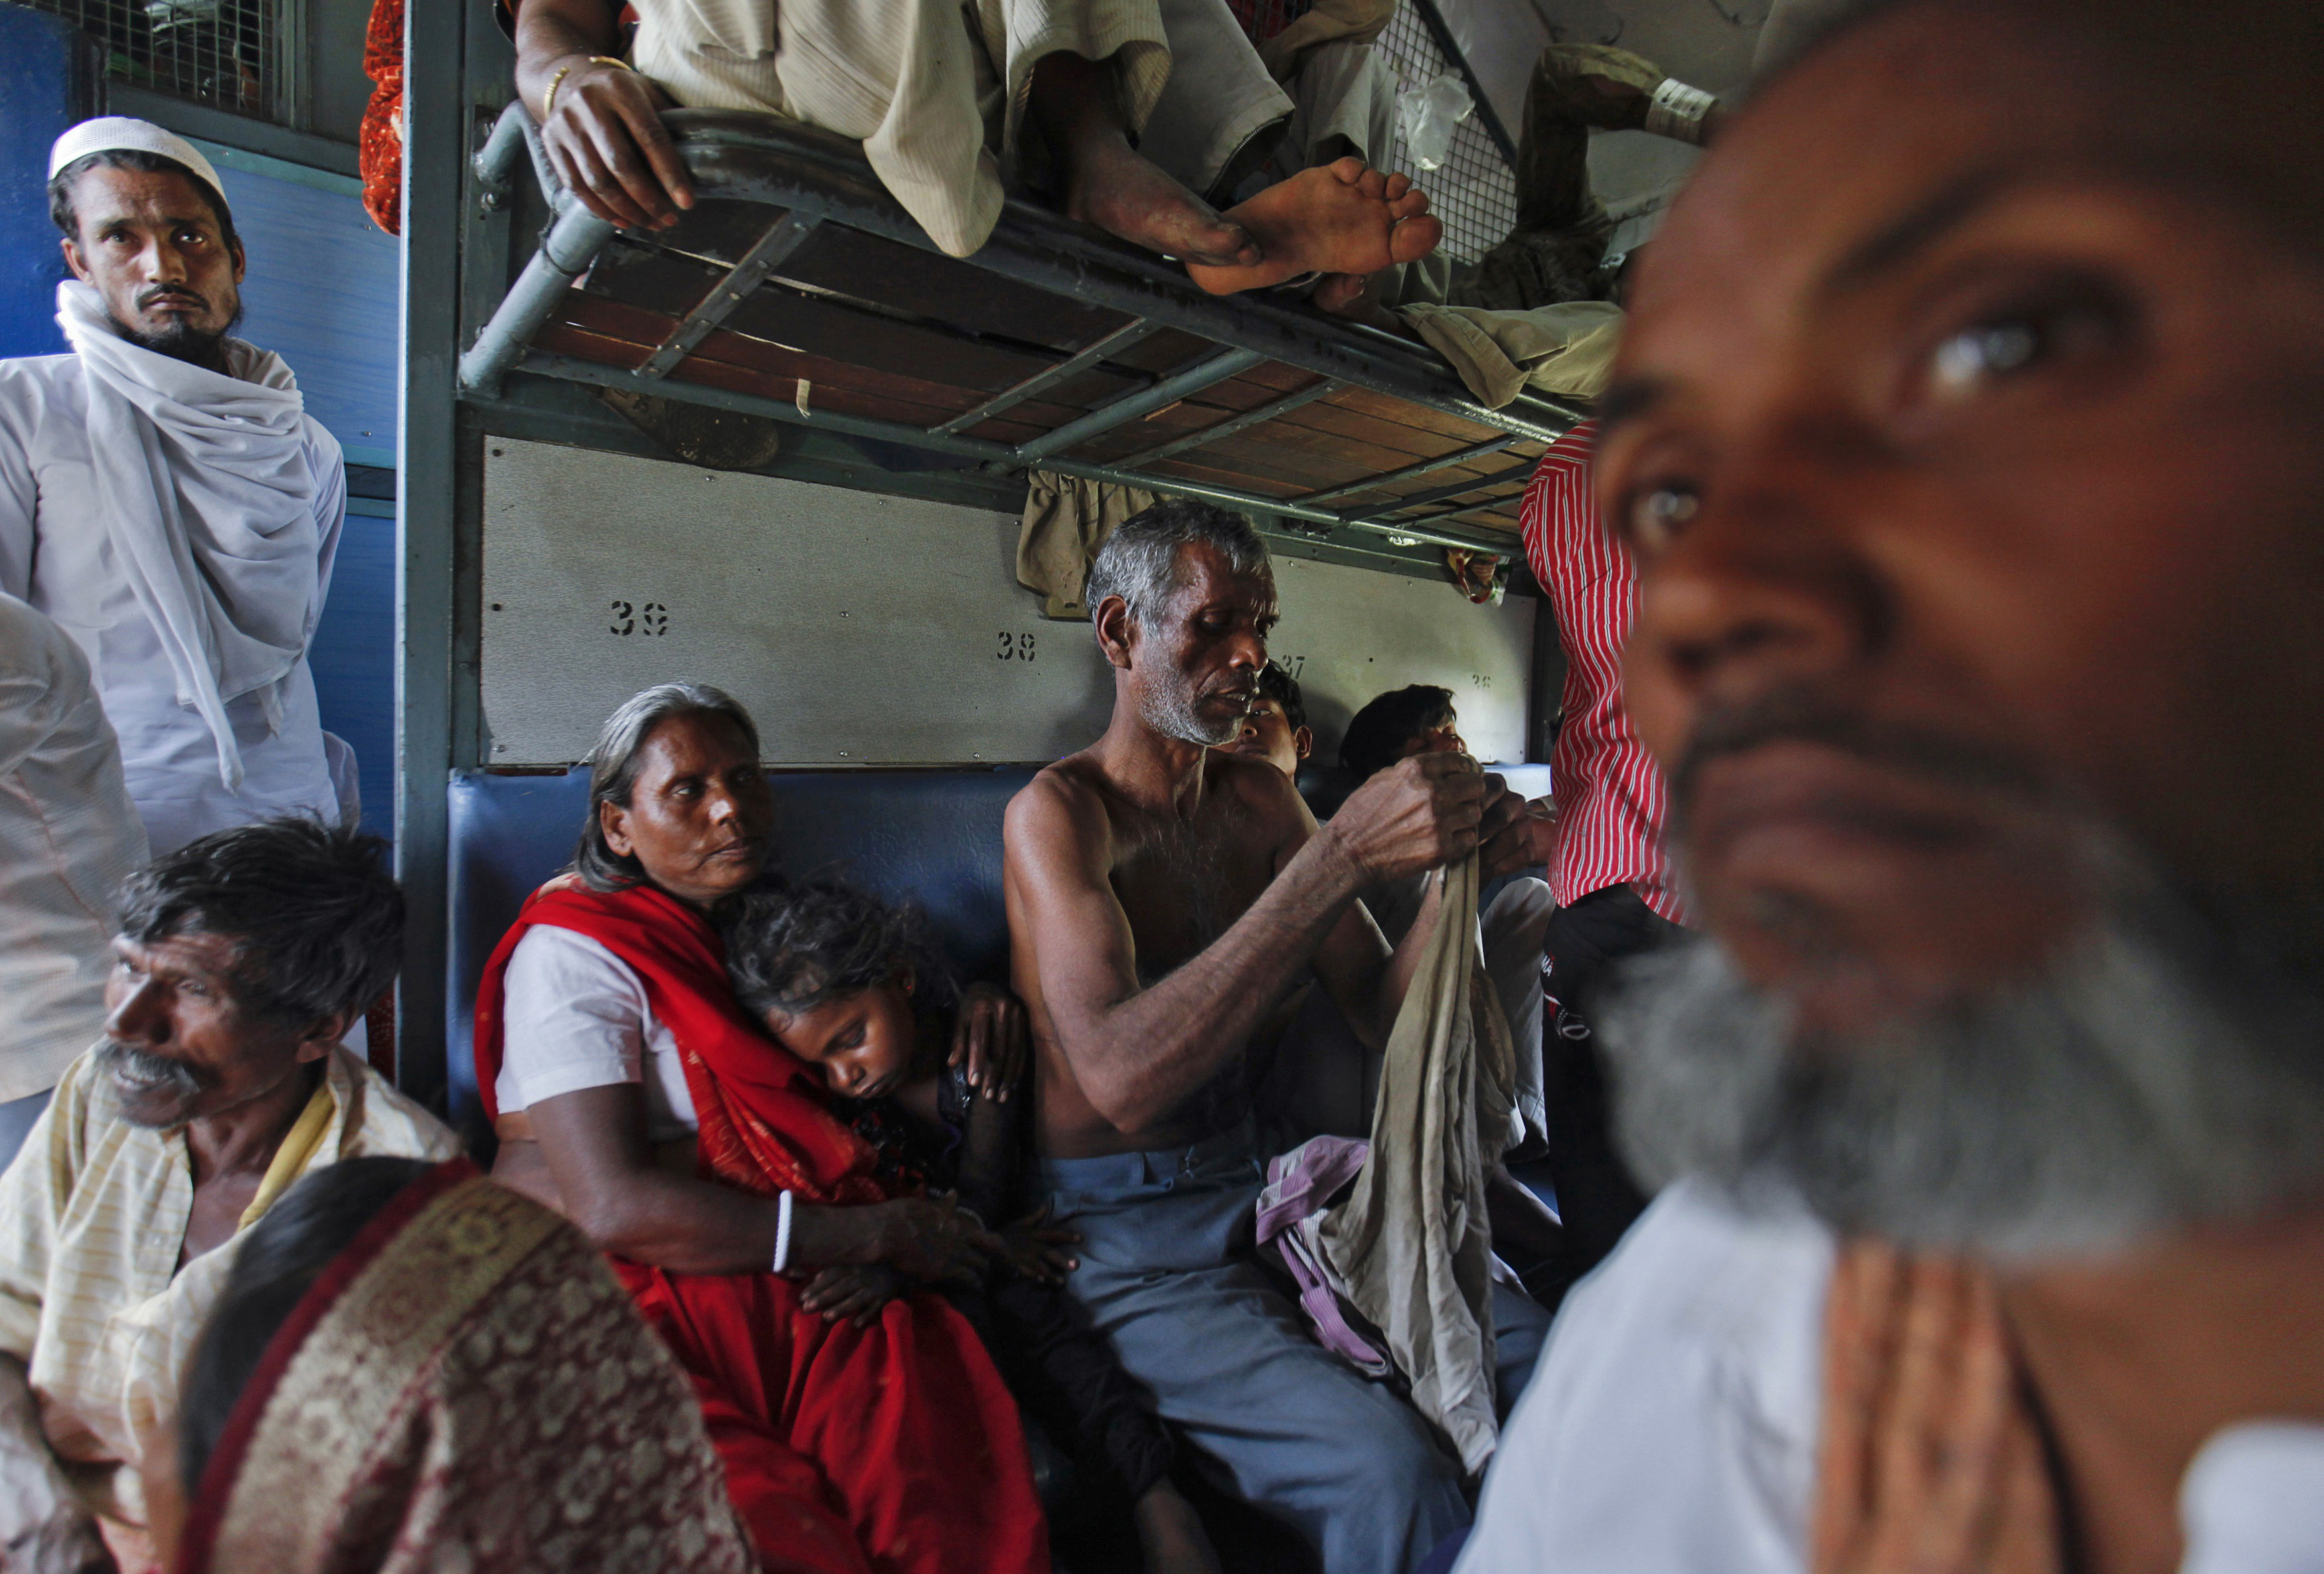 Passengers travel inside an overcrowded general class compartment of the Kalka Mail train in the northern Indian city of Kanpur March 20, 2012. By the end of the day, about 40 people on average will have died somewhere on the network of 64,000 km (39,800 miles) of track. Many will be slum-dwellers and poor villagers who live near the lines and use them as places to wash and as open toilets. Some will have fallen off overcrowded commuter trains. Of the 20 million people who travel daily on the network, many will arrive hours, even a day, behind schedule, having clattered along tracks and been guided by signalling systems  built before India gained independence from Britain in 1947.  To match Insight INDIA-RAILWAYS  REUTERS/Danish Siddiqui (INDIA - Tags: TRANSPORT SOCIETY POLITICS BUSINESS) - RTR2ZOS4